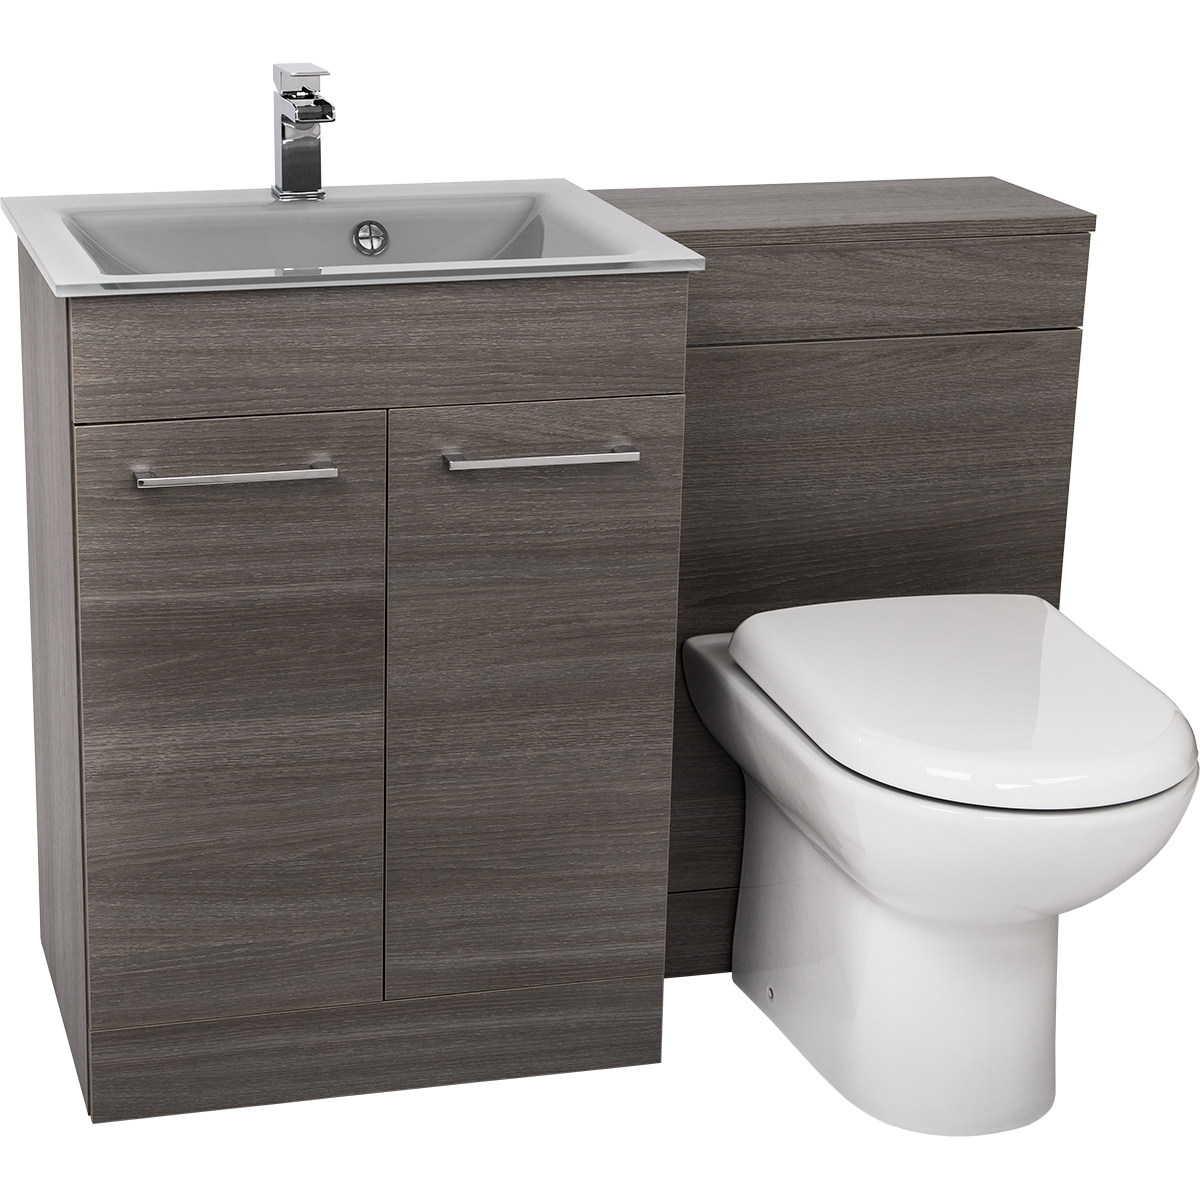 Sink And Toilet Combo Venice Mono Grey Glass 2 Door Napoli Grey Combination Unit From